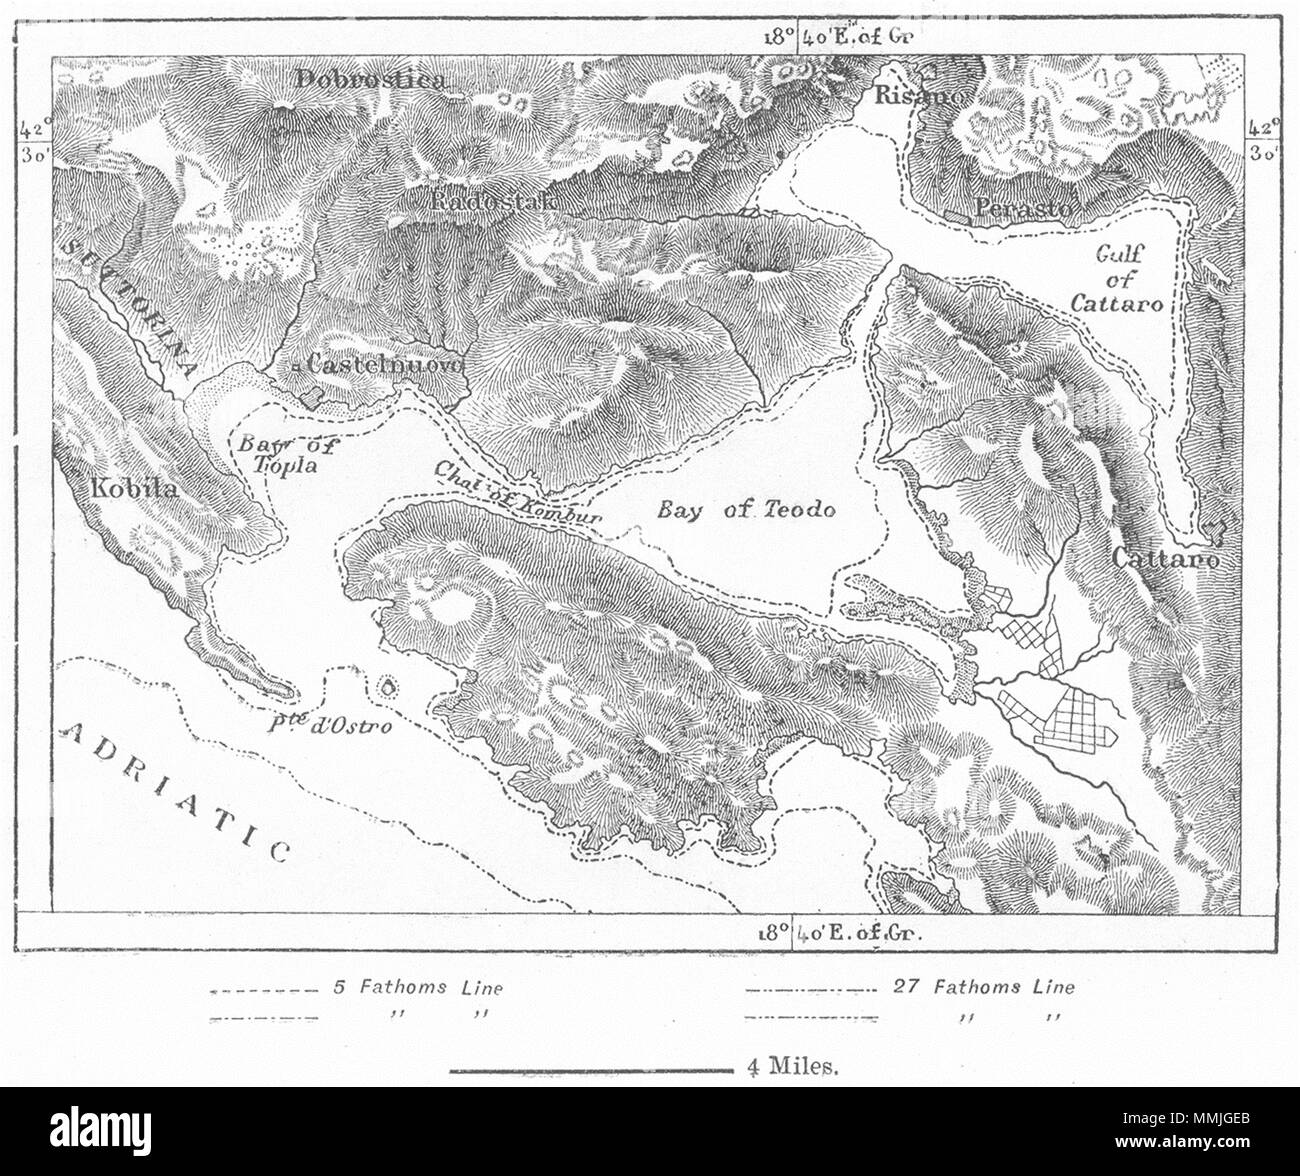 MONTENEGRO. Kotor Bay, sketch map c1885 old antique vintage plan chart - Stock Image